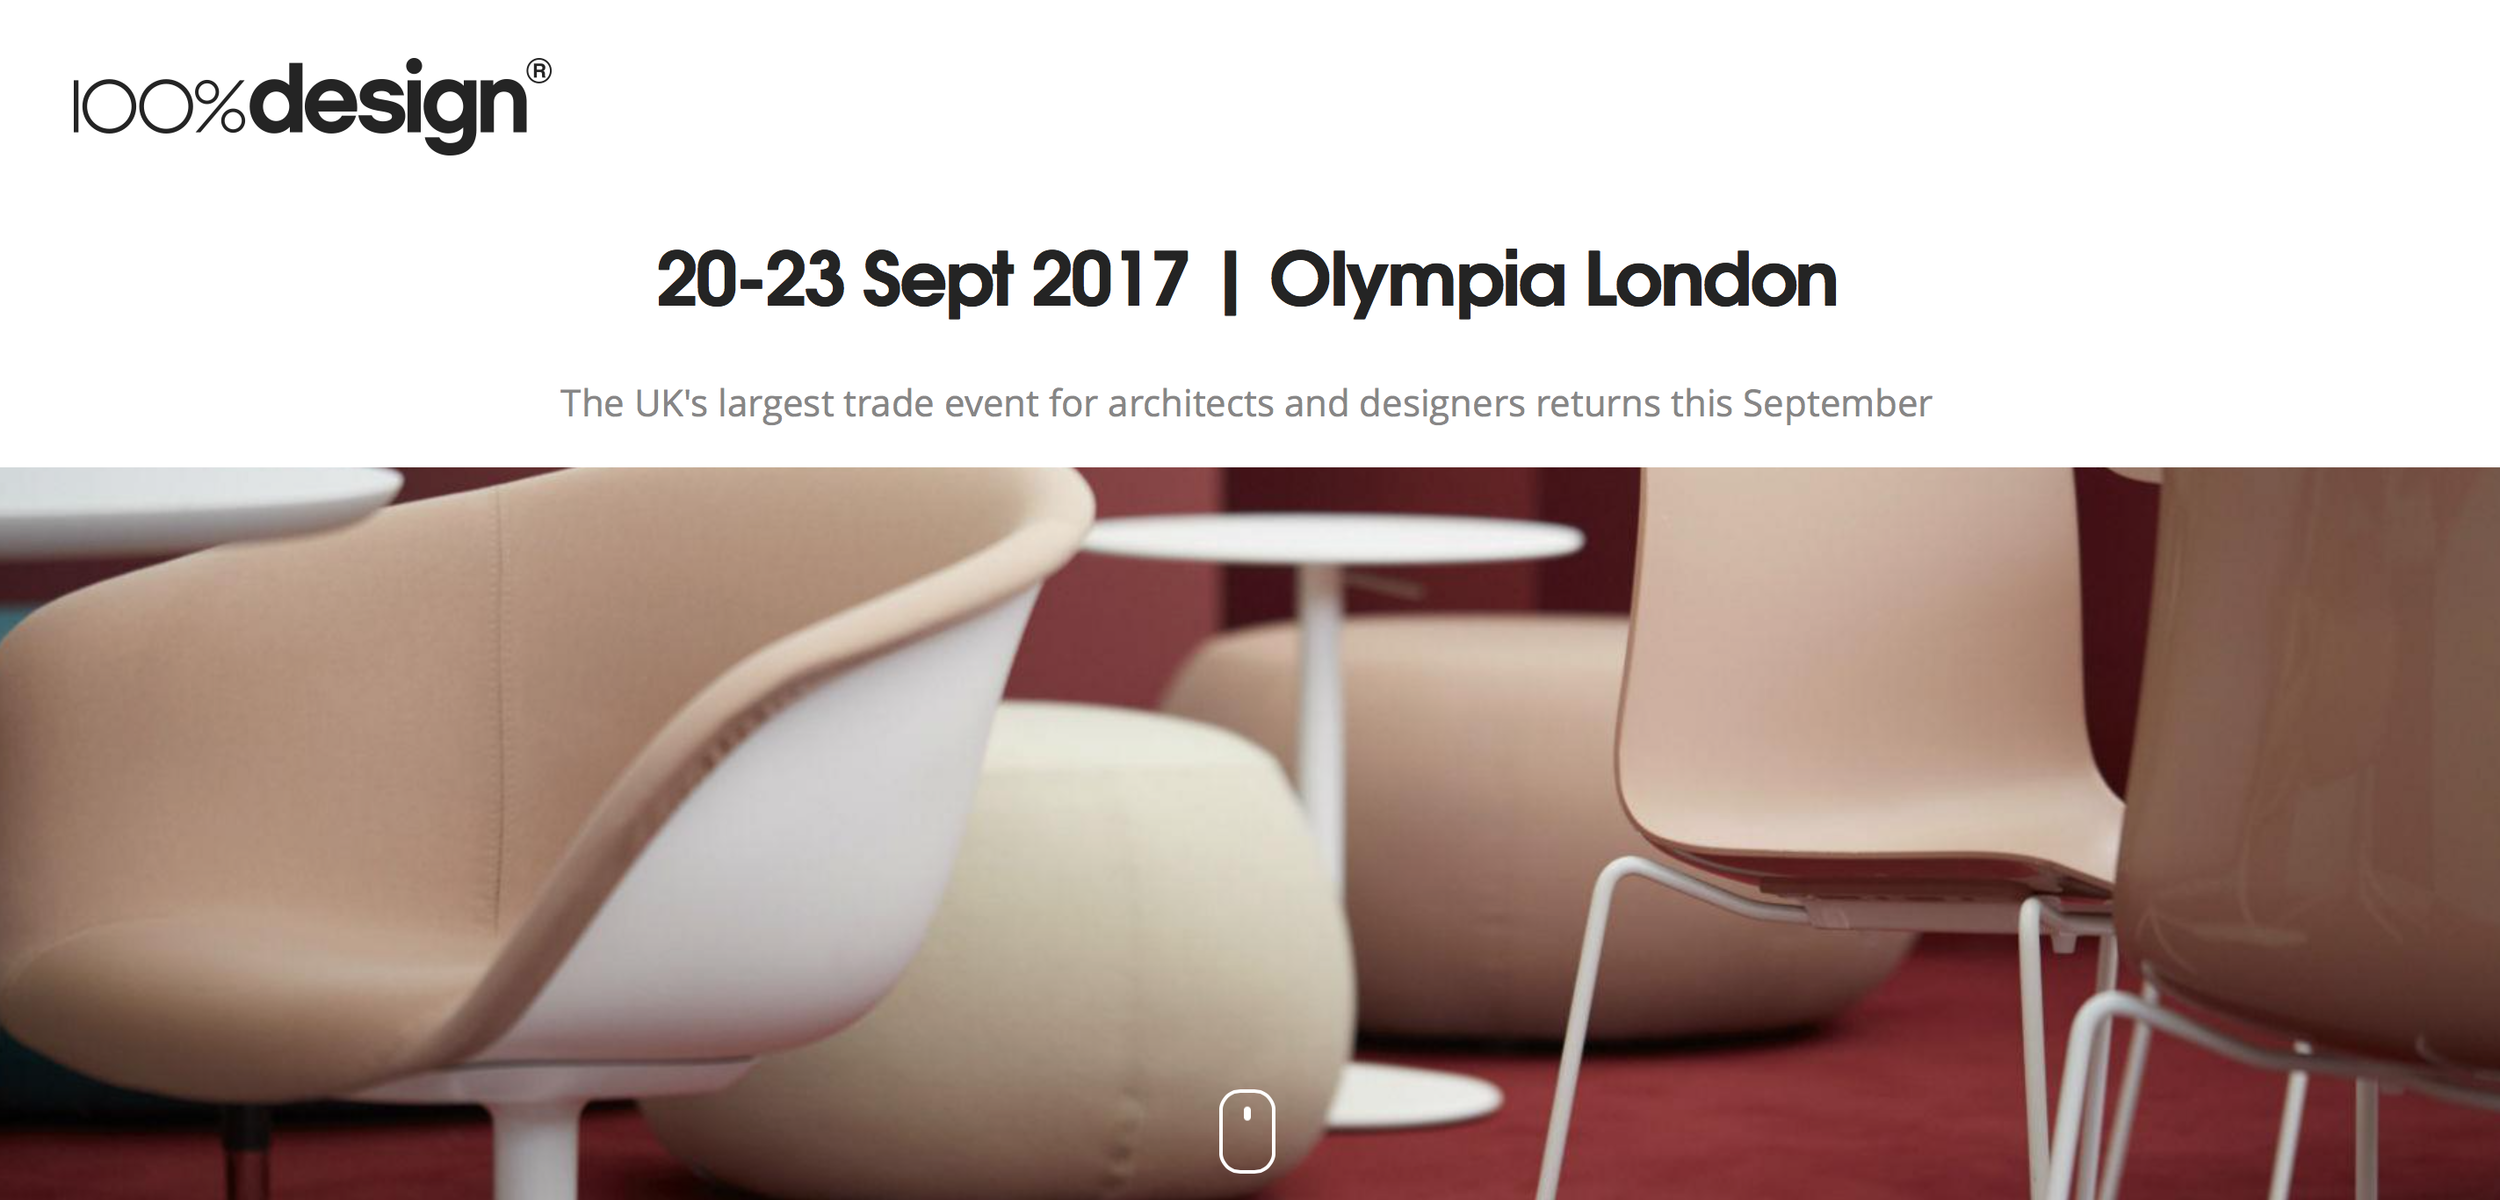 100design_london.png